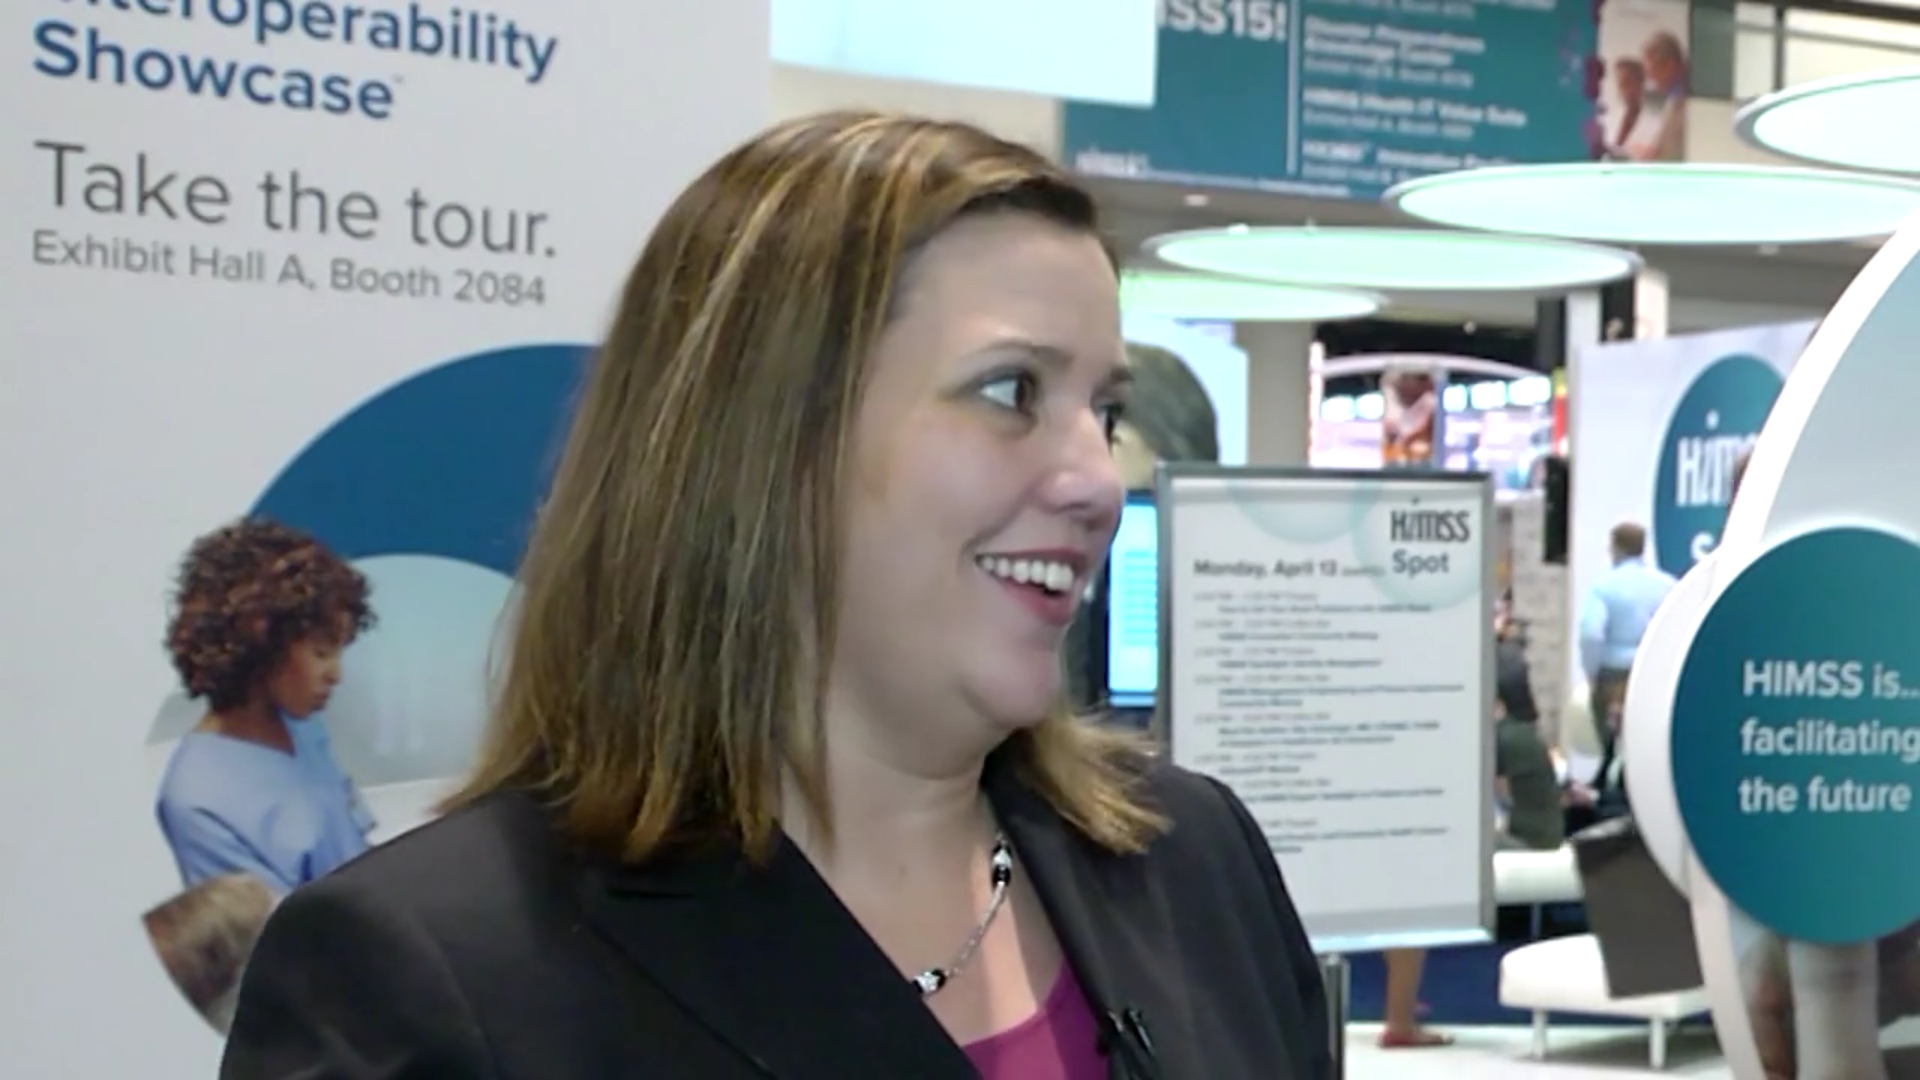 Sandra vance on the interoperability showcase at himss15 sandra vance on the interoperability showcase at himss15 healthcare it news 1betcityfo Images